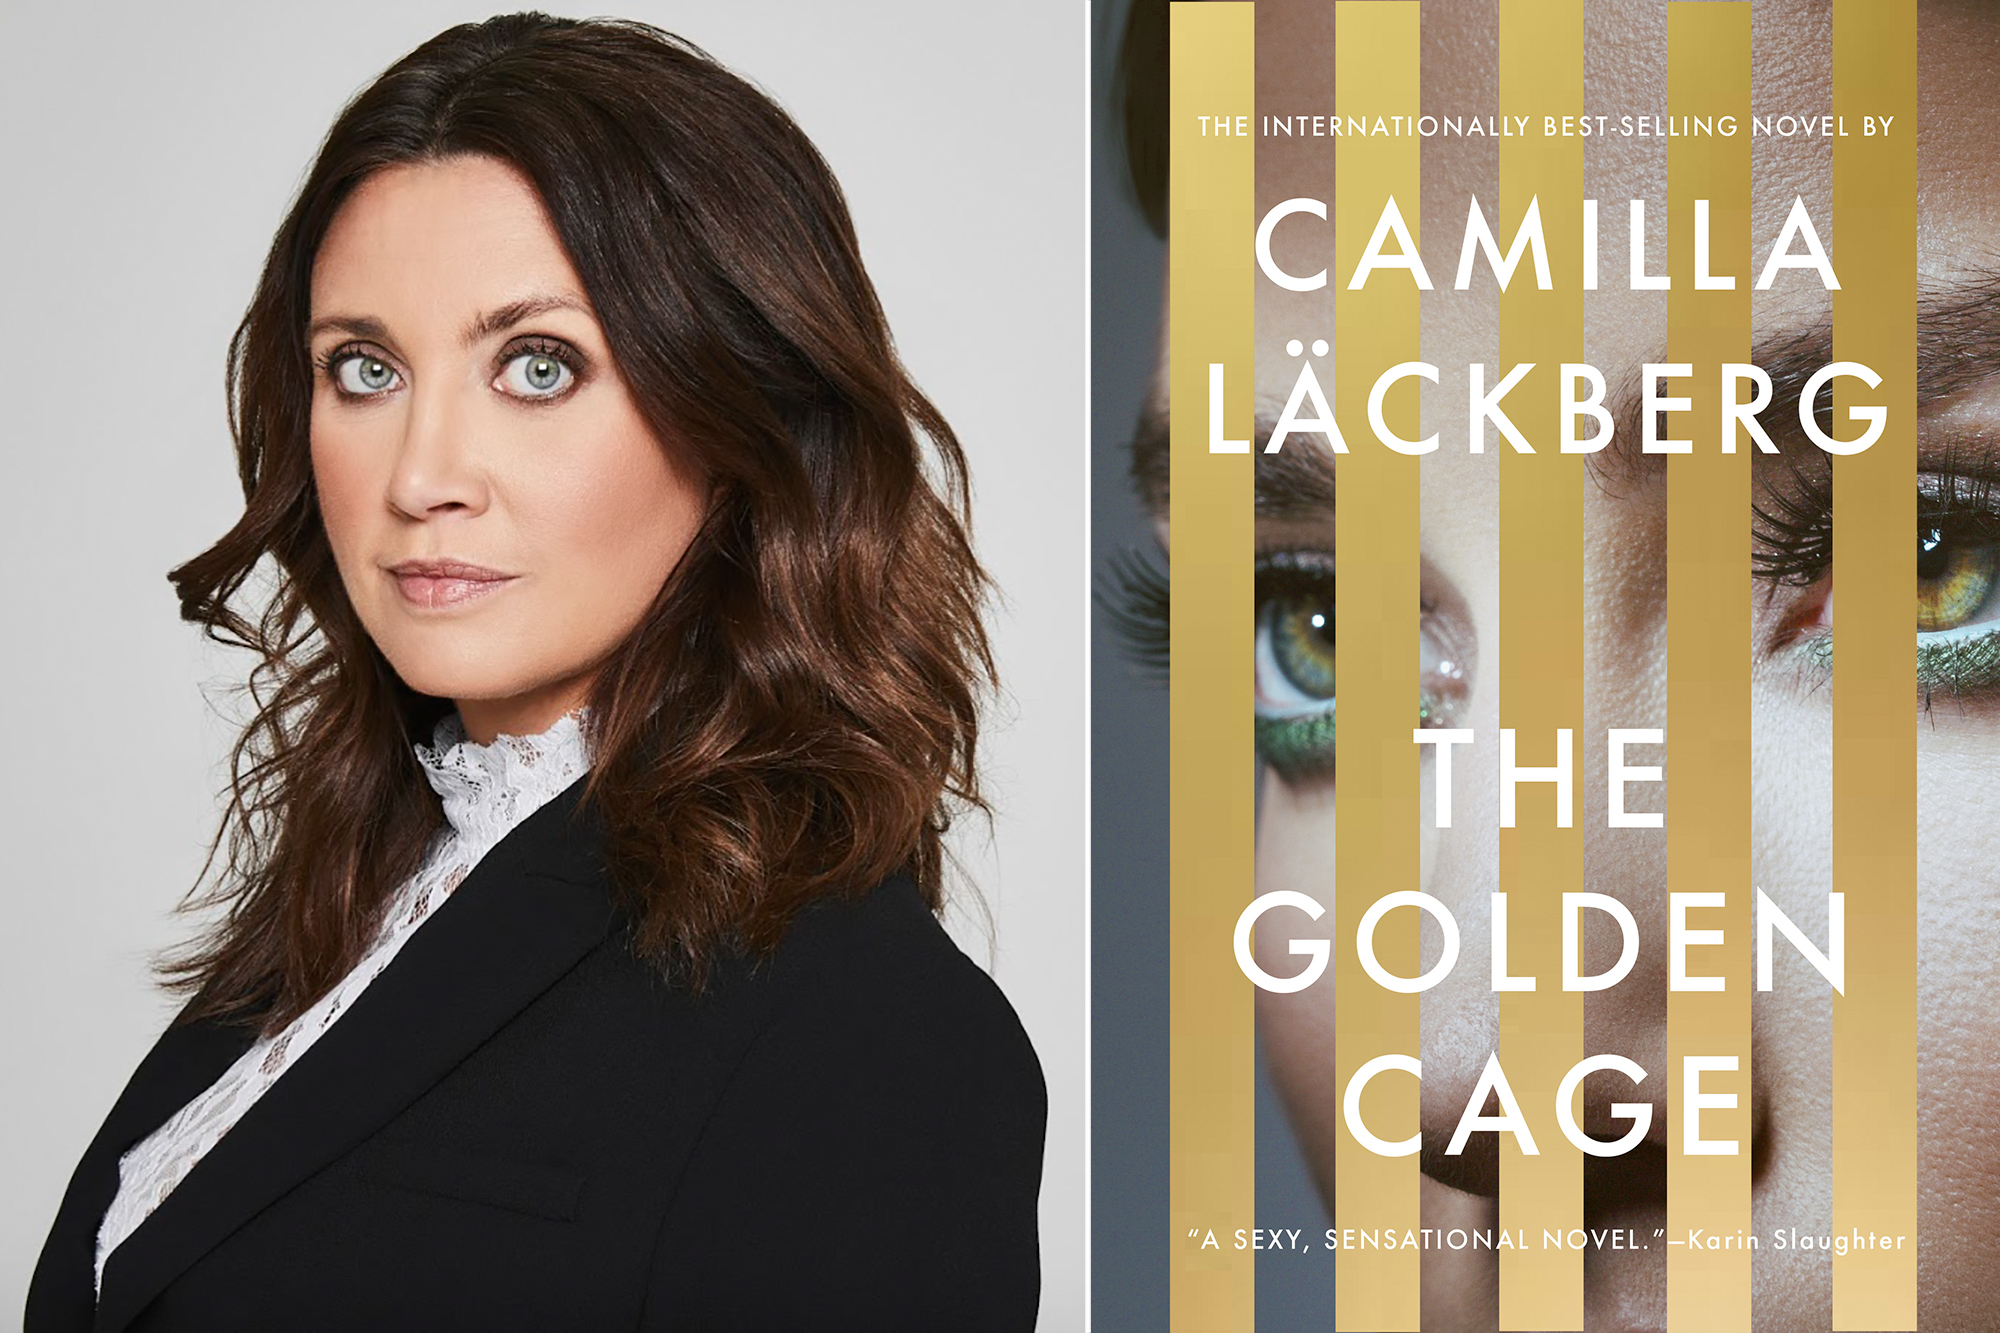 Camilla Lackberg, The Golden Cage